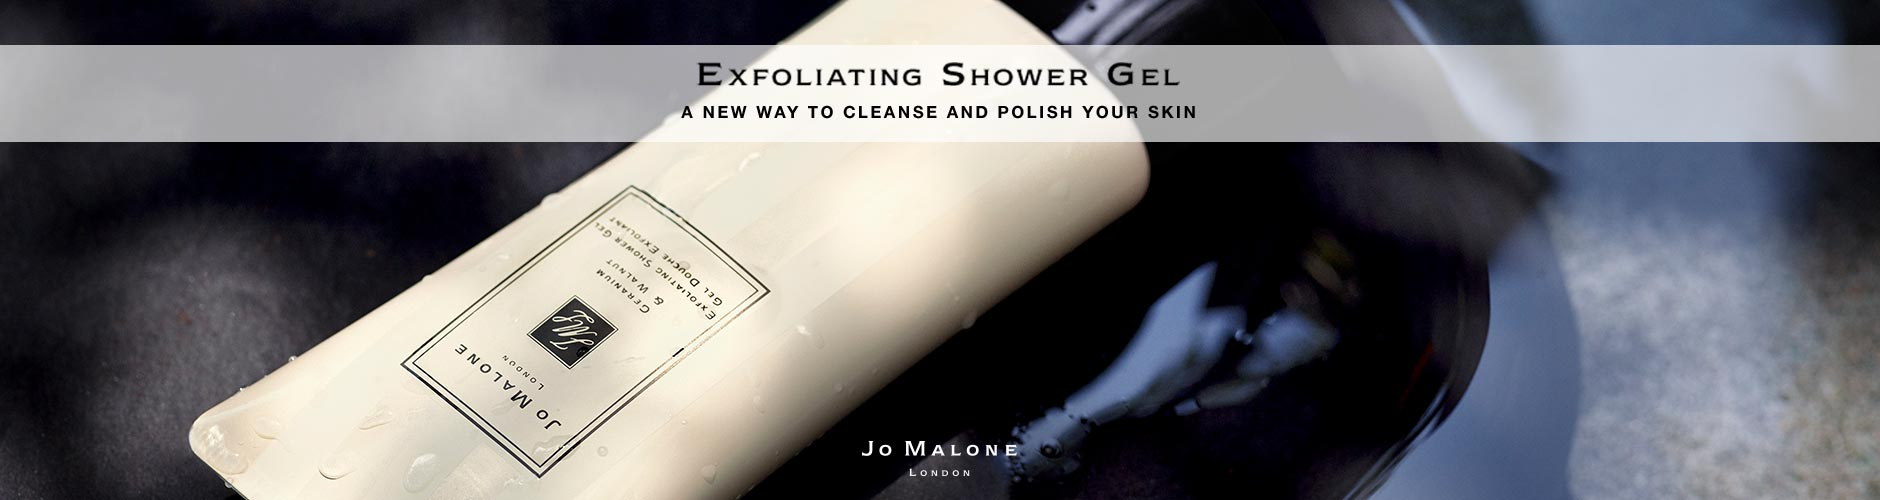 Exfoliating Shower Gel: A new way to cleanse and polish your skin - Jo Molone, London